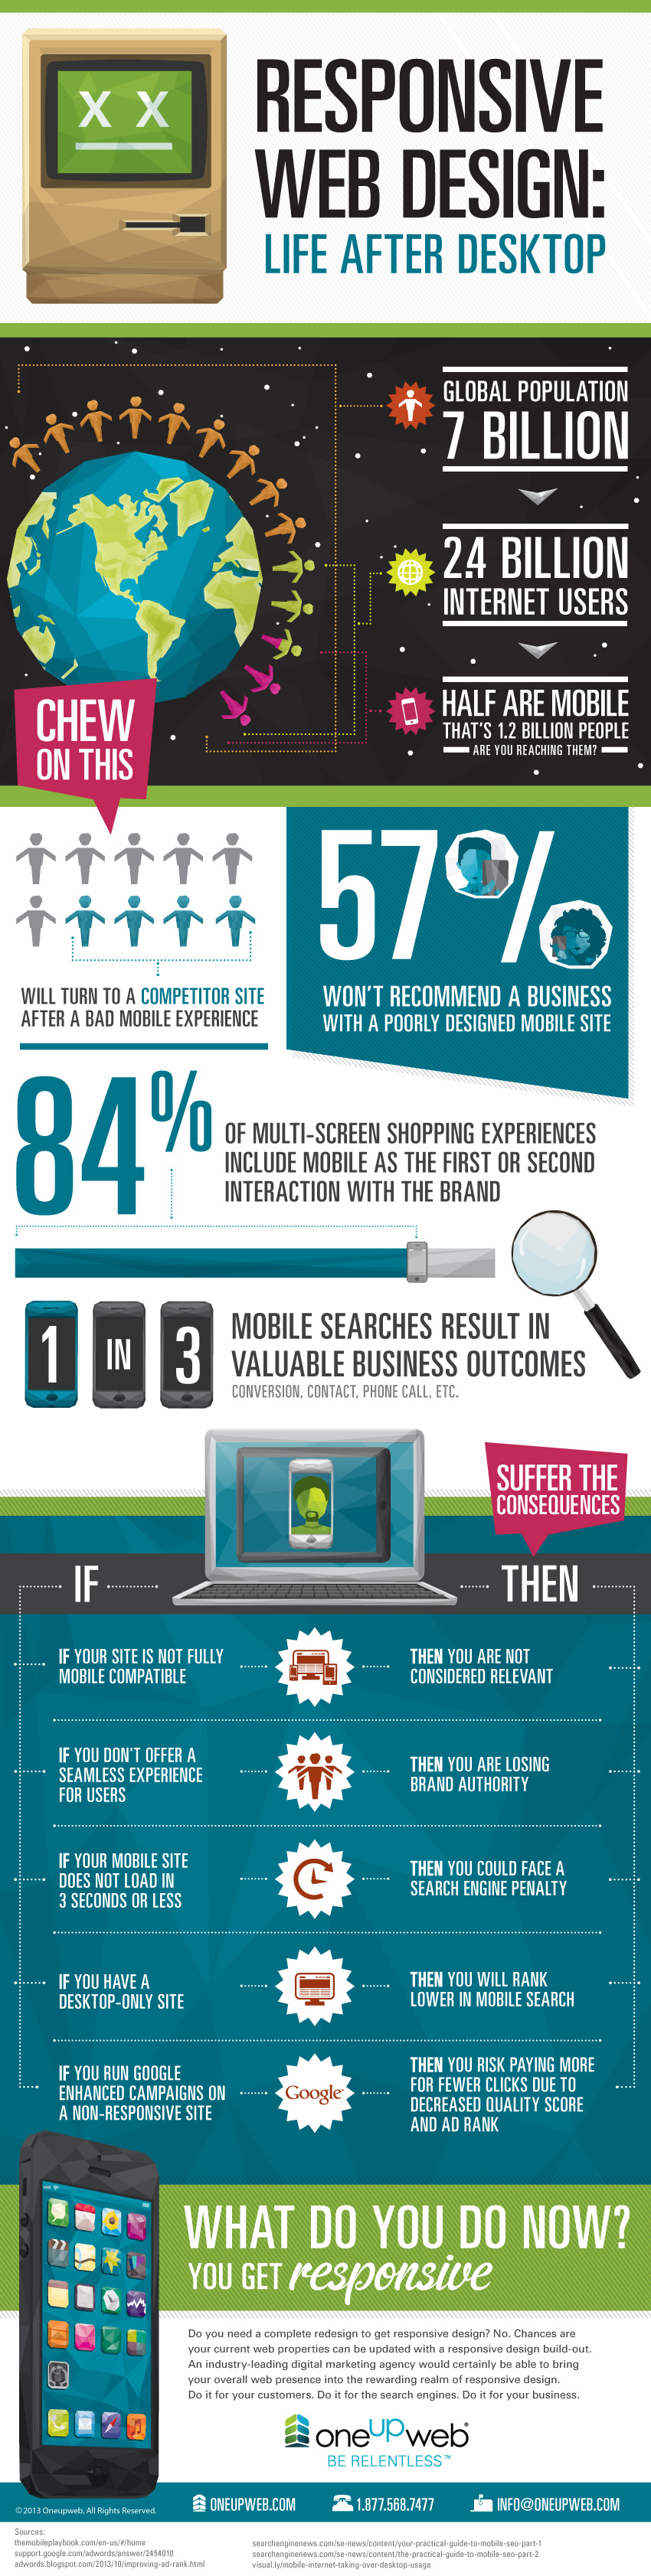 oneupweb_digital_marketing_responsive_design_infographic1